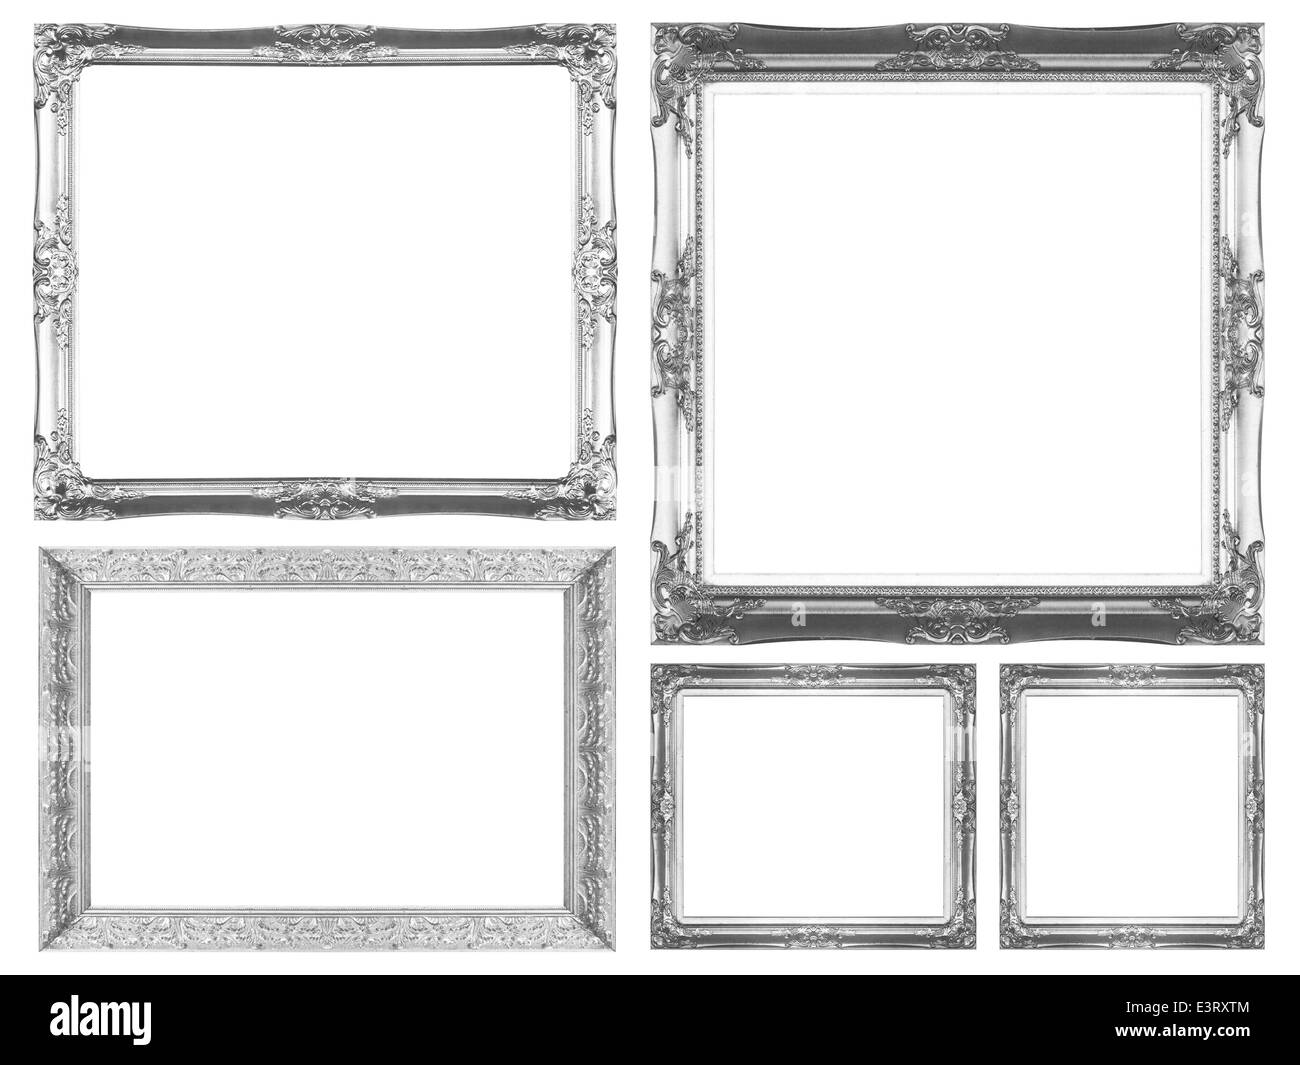 Silver picture frame isolated on white background. - Stock Image